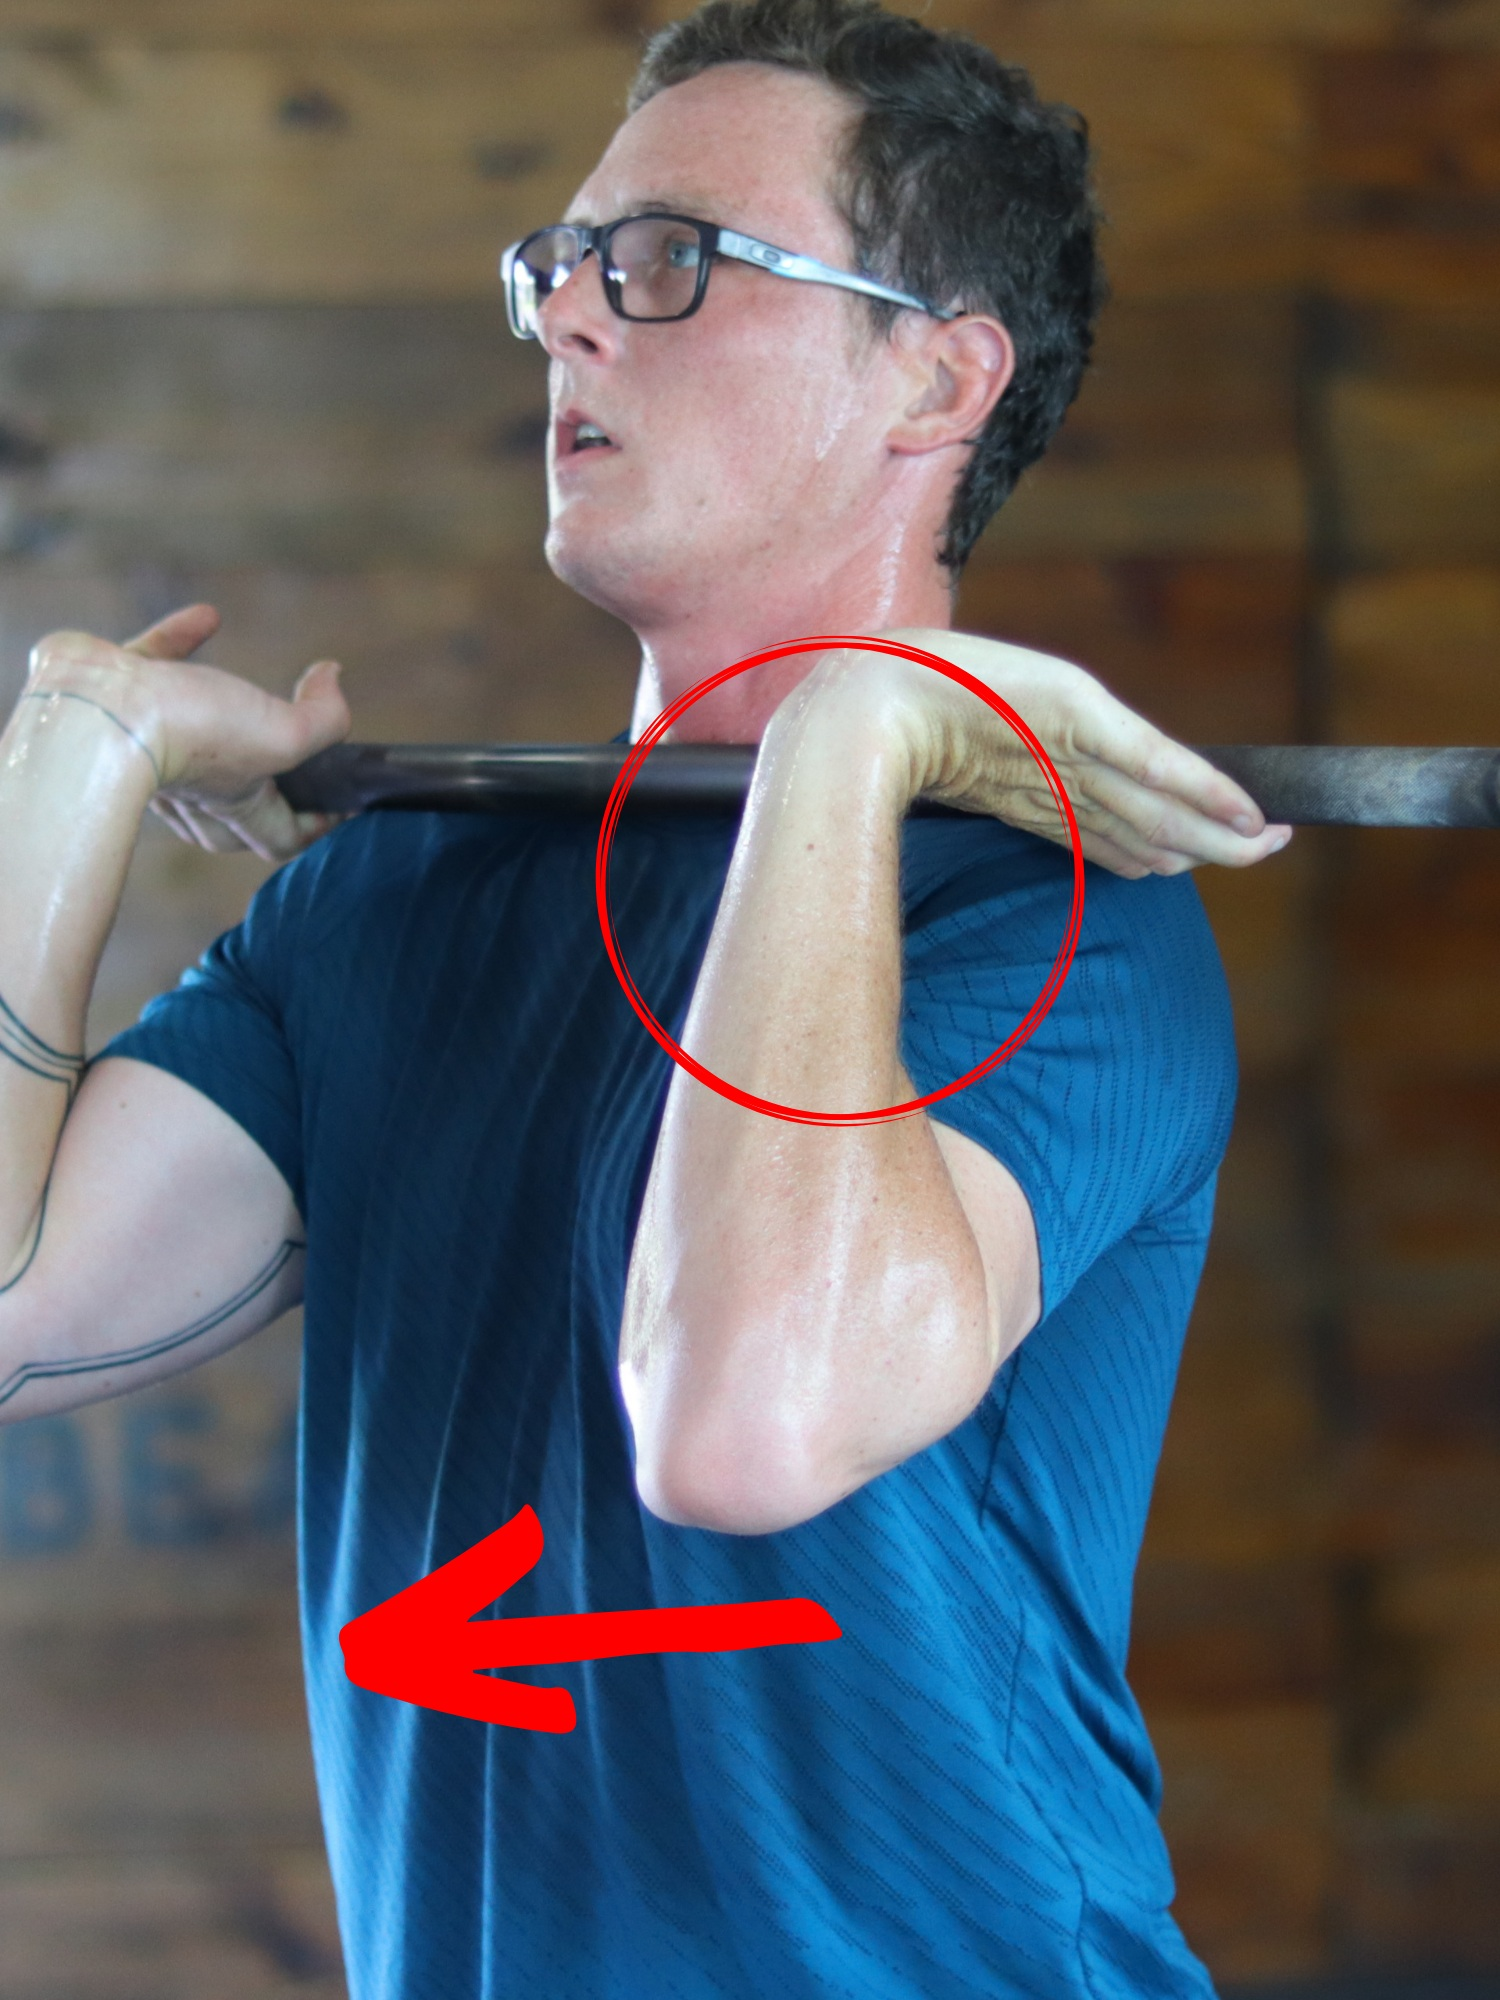 The culprit for most front rack position issues is a flared ribcage (especially on the left side). Tilt of the ribcage inhibits shoulder flexion (arm moving up) and external rotation (thumb turning toward the ceiling). This leaves the wrist as one of the only areas left to pick up the lack of range of motion. Repetitive movement will leave the joint overtaxed. -